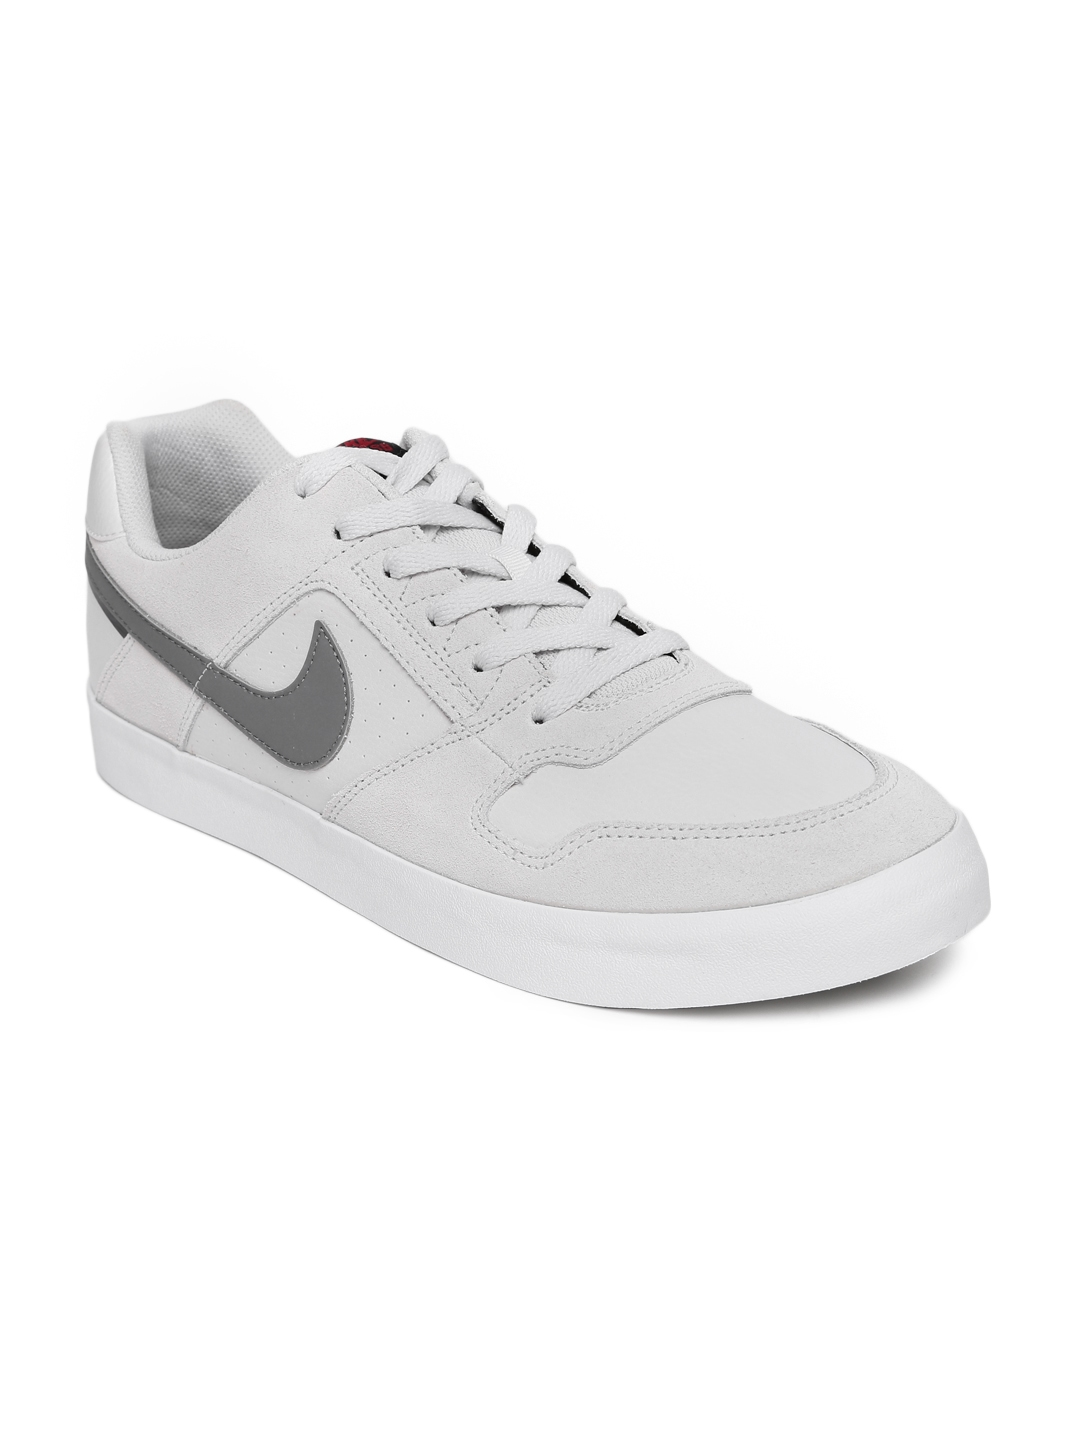 b4dc30e9a815dc Buy Nike Men Grey Delta Force Vulc Skateboarding Shoes - Sports ...